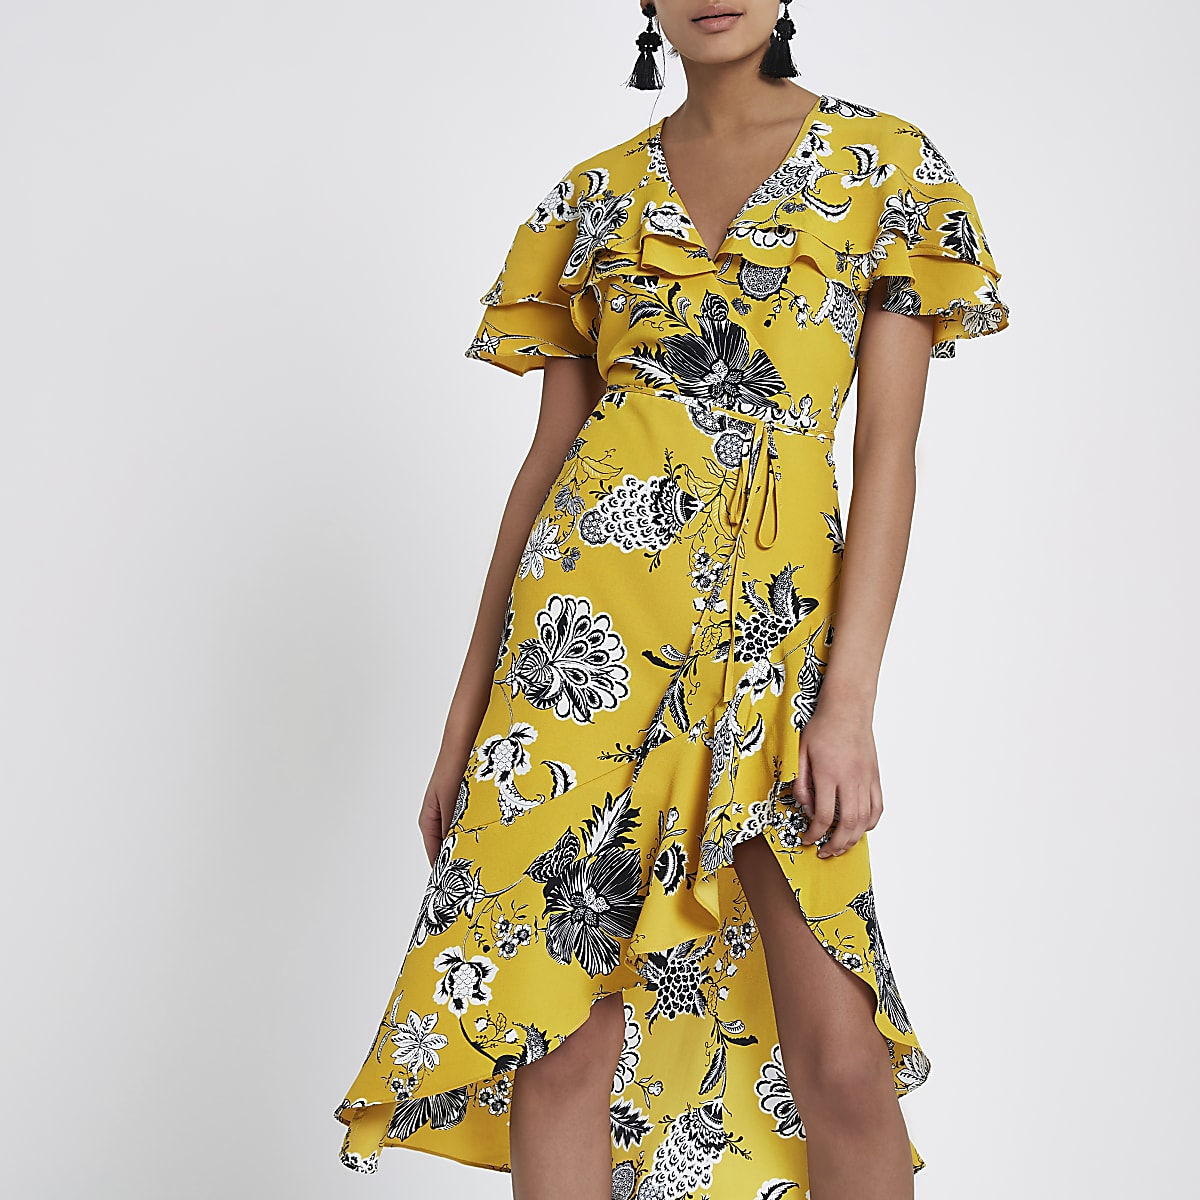 bde987bf84 Yellow floral frill tie waist wrap midi dress - Swing Dresses - Dresses -  women